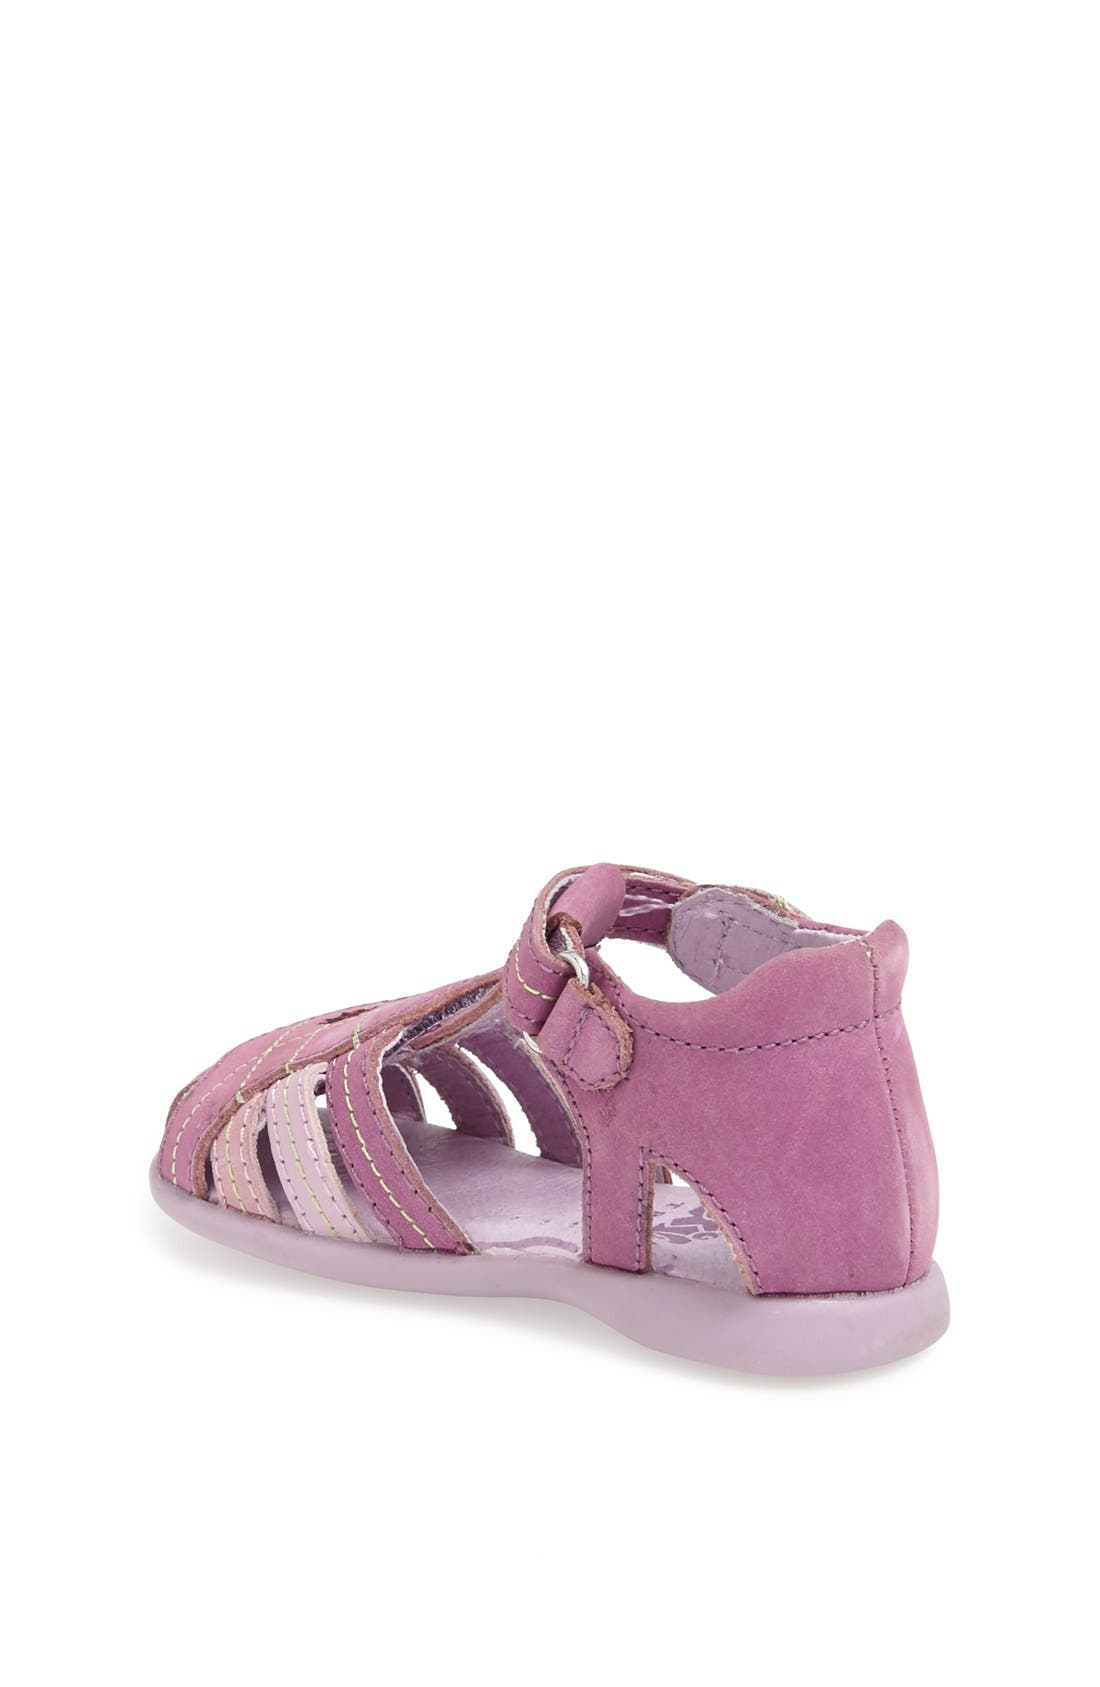 Alternate Image 2  - Kio Trend 'Lena' Sandal (Baby, Walker & Toddler)